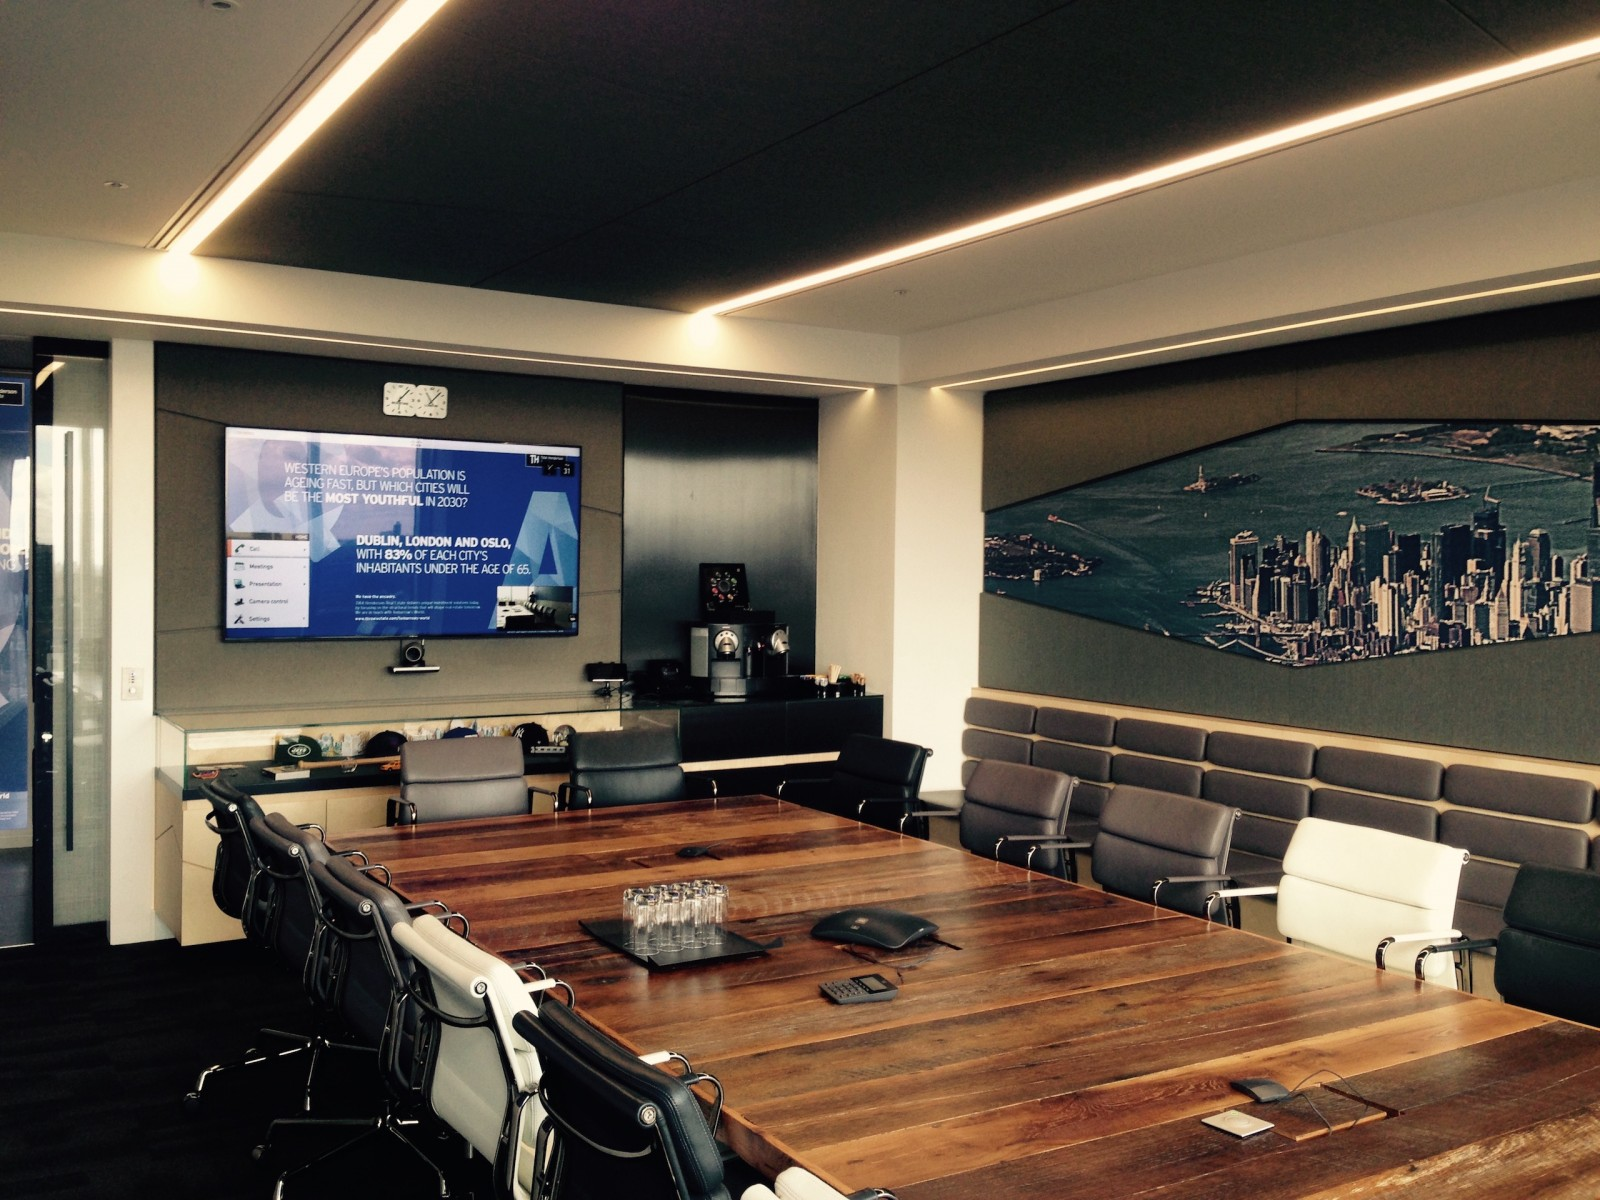 Pacific Technology Day - The Audio-Visual systems in your Meetings rooms need to work every time, do yours?